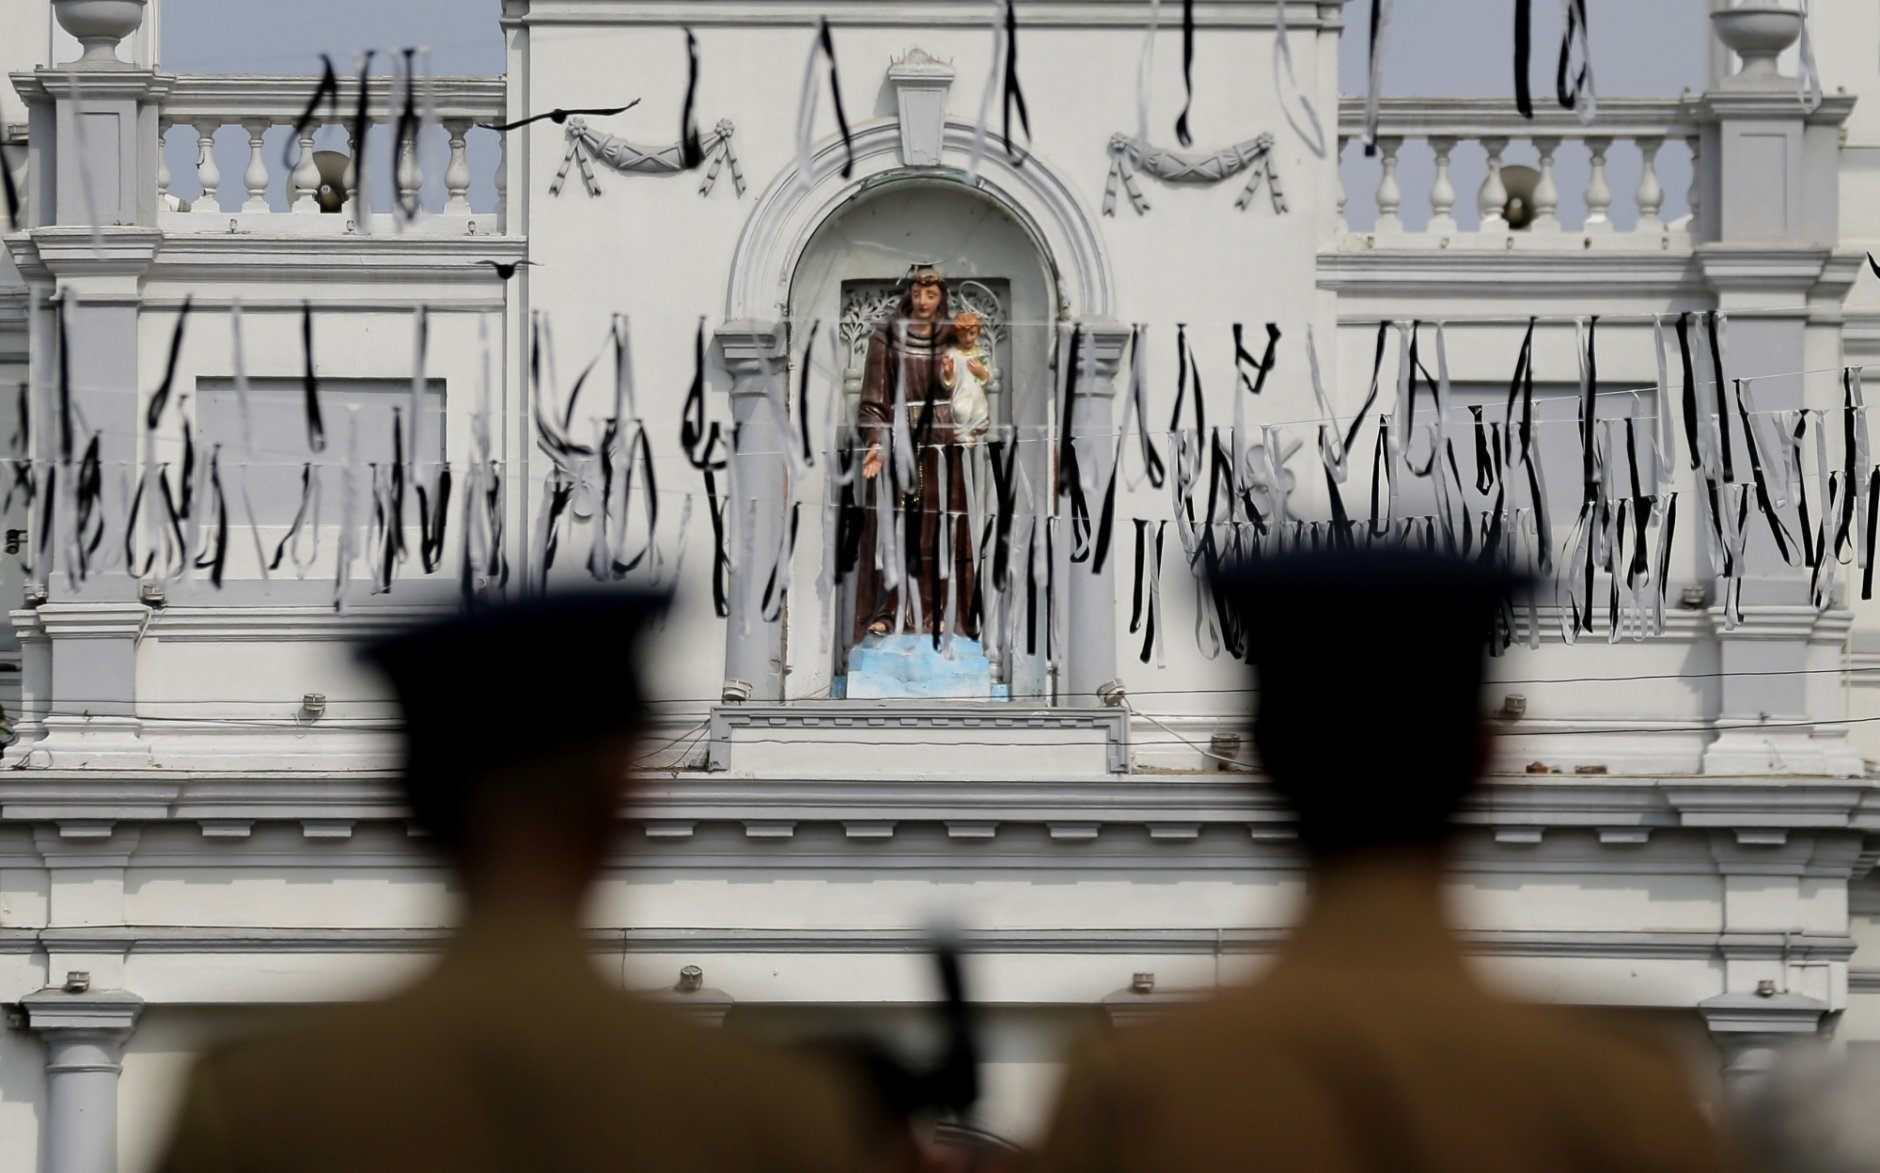 Sri Lankan police officers secure the area of exploded St. Anthony's Church on Easter Sunday attacks in Colombo, Sri Lanka, Sunday, April 28, 2019. Sri Lanka's Catholics on Sunday awoke preparing to celebrate Mass in their homes by a televised broadcast as churches across the island shut over fears of militant attacks, a week after the Islamic State-claimed Easter suicide bombings. (AP Photo/Eranga Jayawardena)